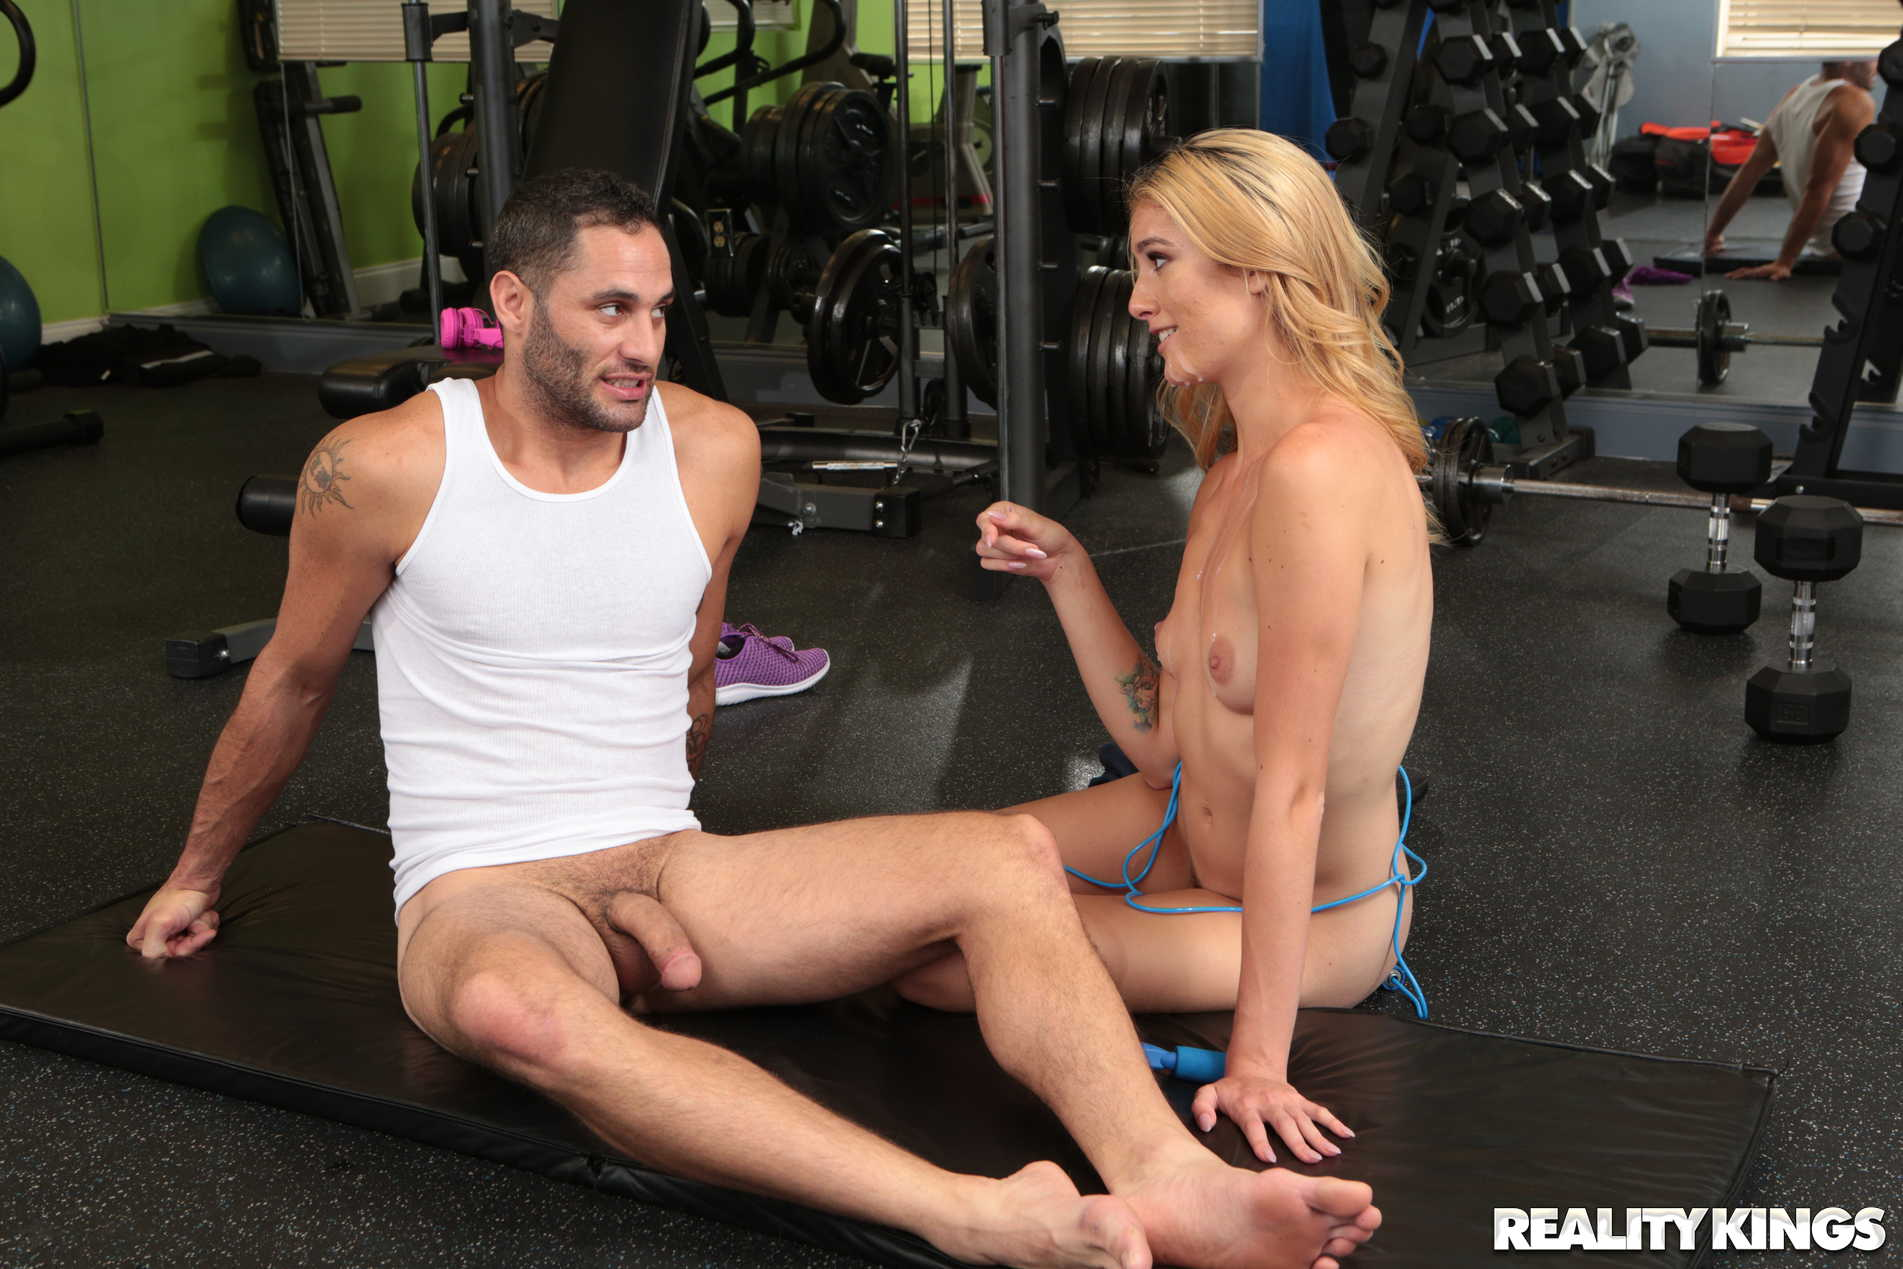 Reality Kings 'Body Blow Your Load' starring Mazzy Grace (Photo 192)